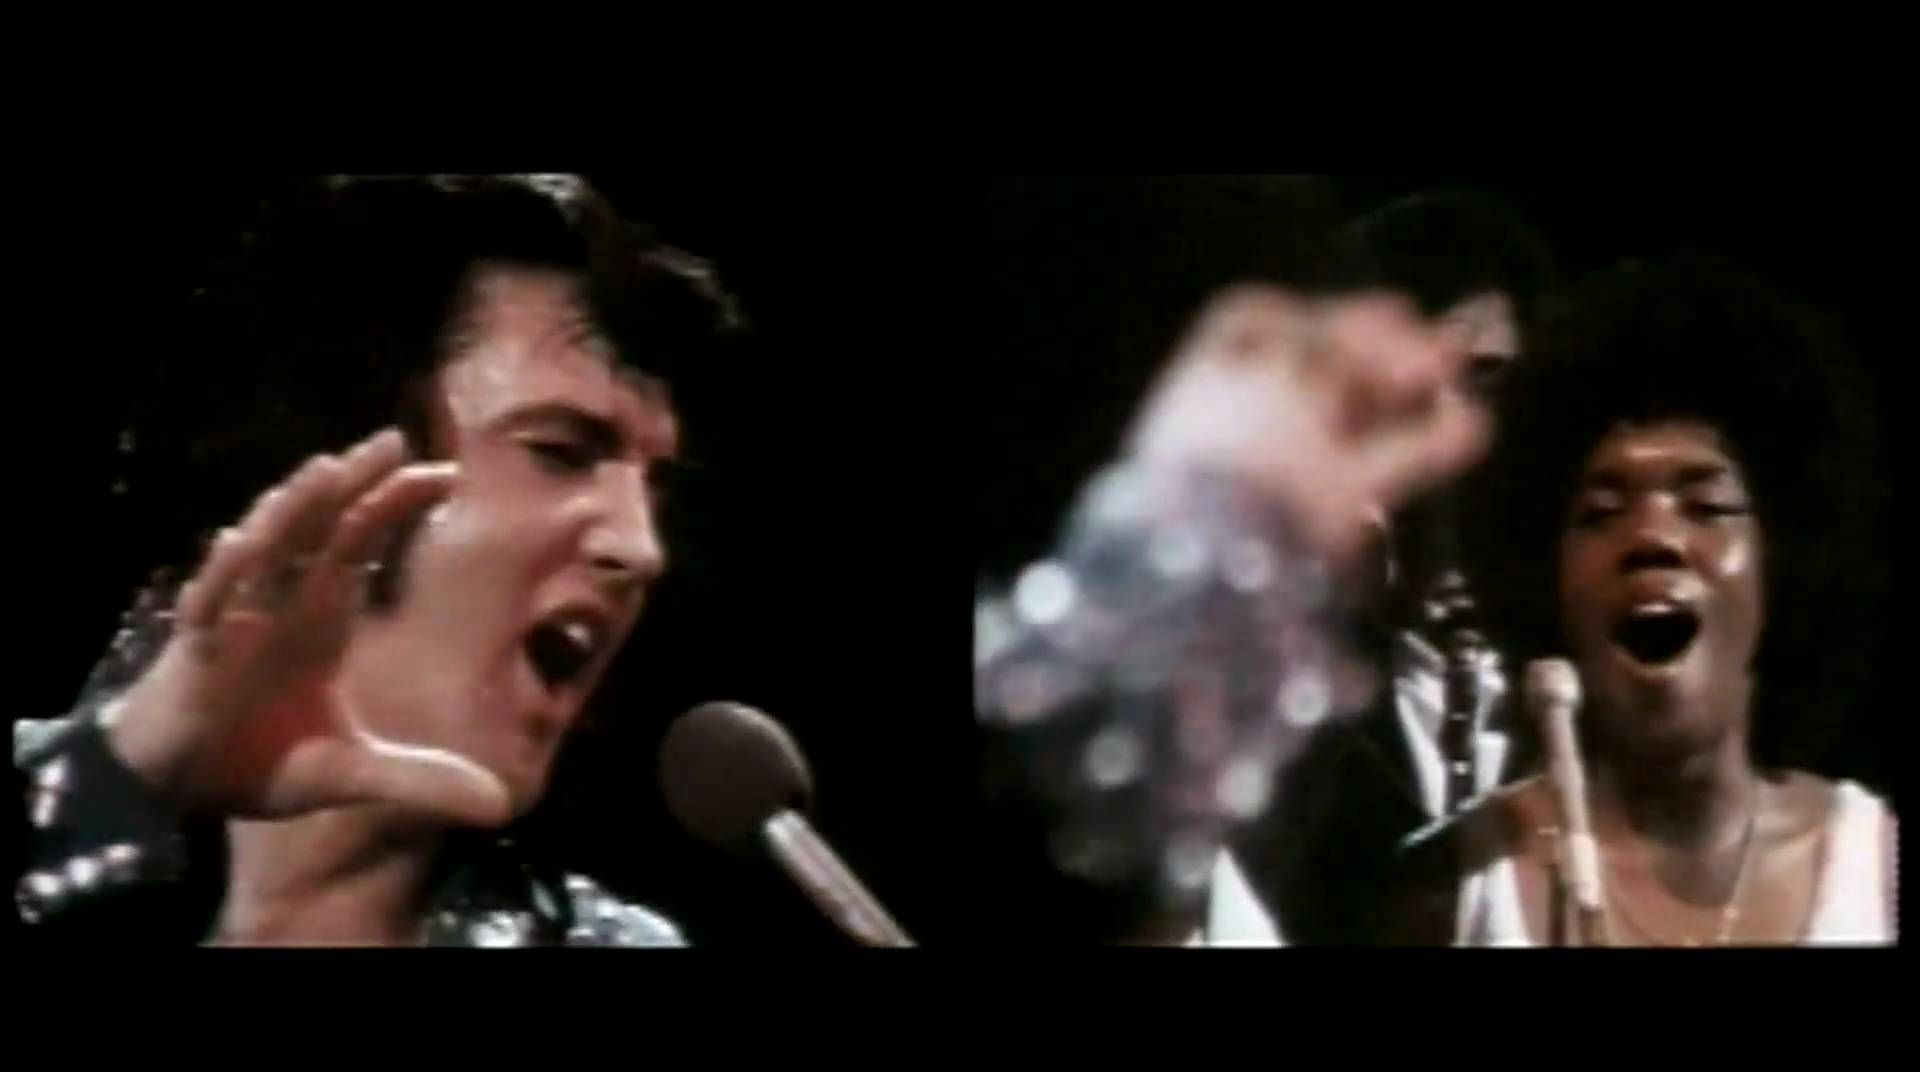 By spring 1972 the overall sound elvis wanted for his